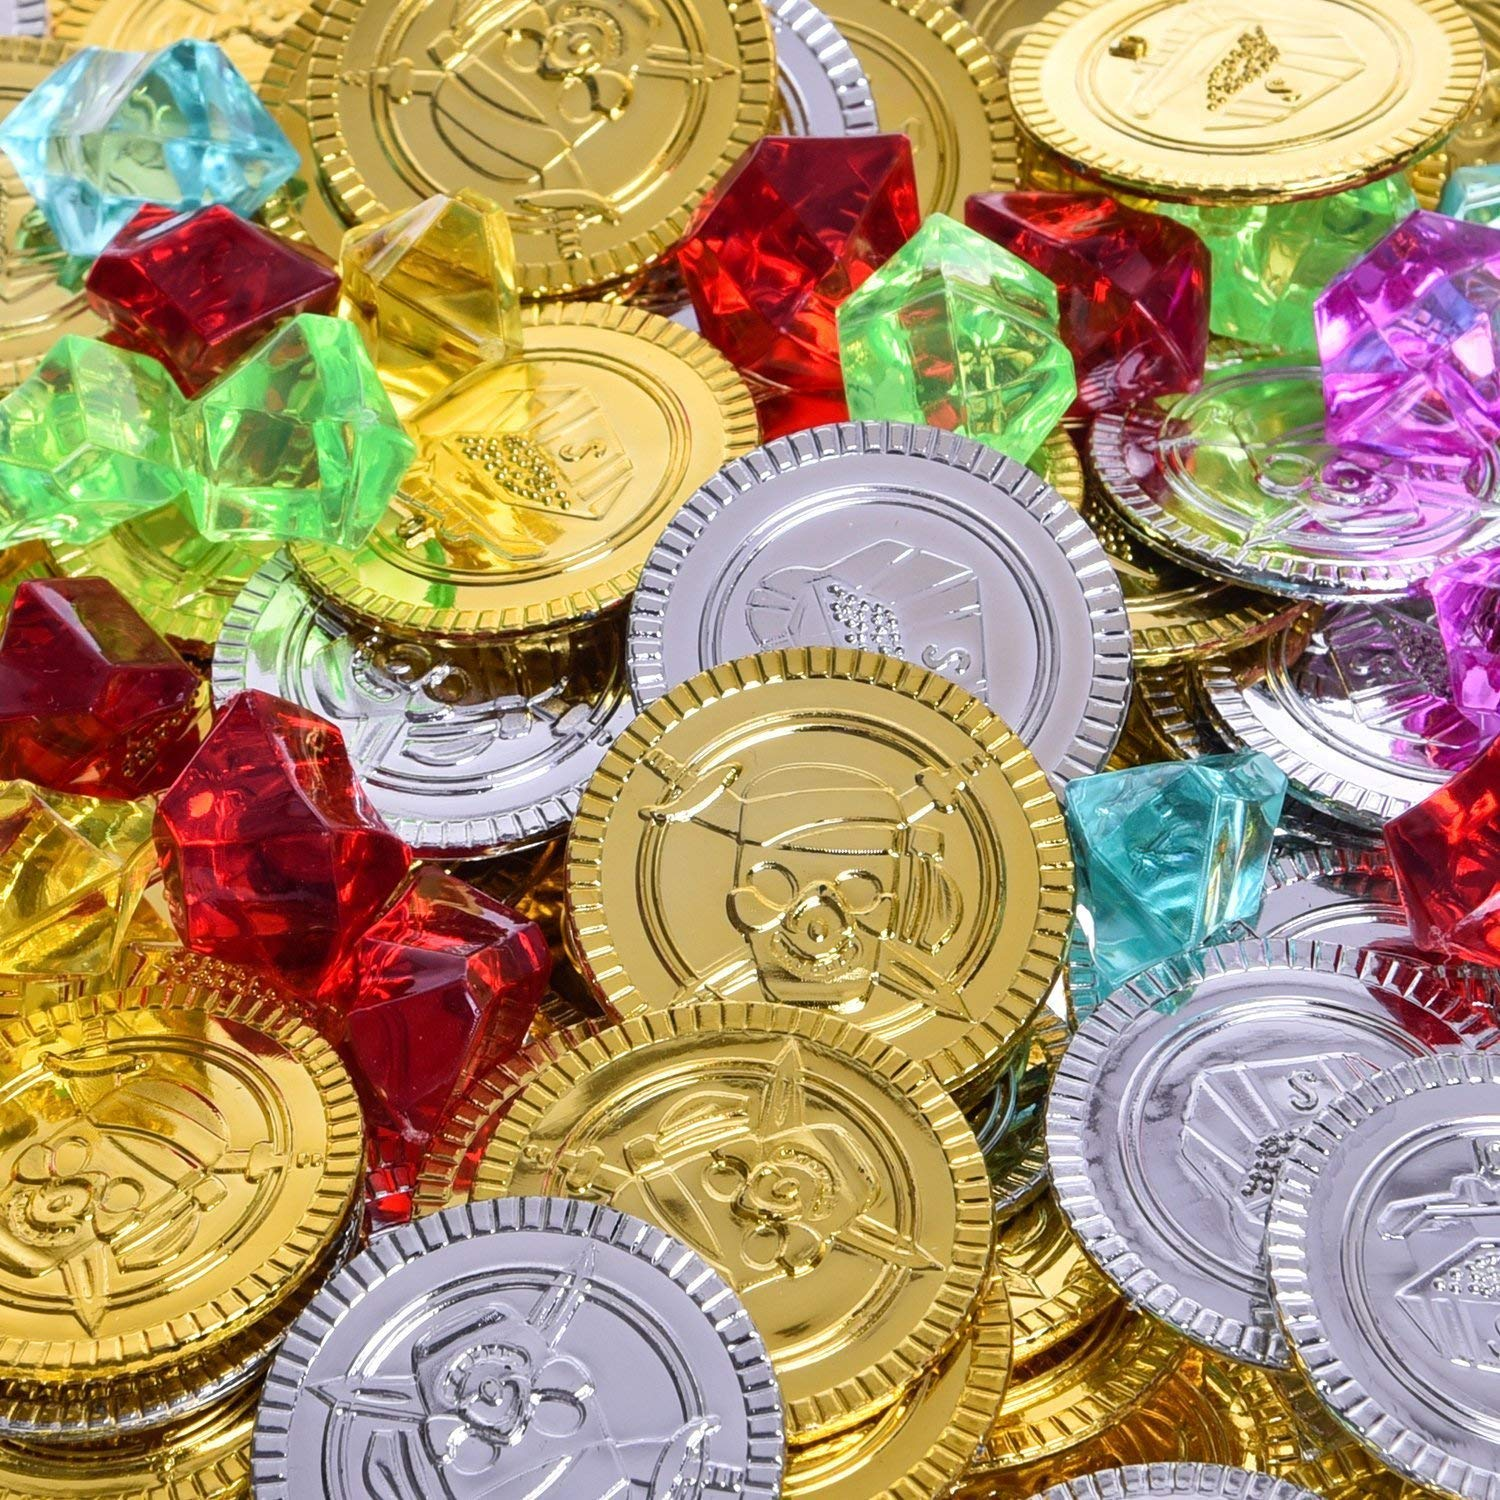 288 PCs Pirate Toys Gold Coins and Pirate Gems Jewelery Playset Goodie Bag Fillers Party Favor for Kids Easter Egg Fillers Easter Egg Stuffers Patricks Day Plastic Gold Coins 144 Coins+144 Gem St. Patrick/'s Day Plastic Gold Coins FUN LITTLE TOY St